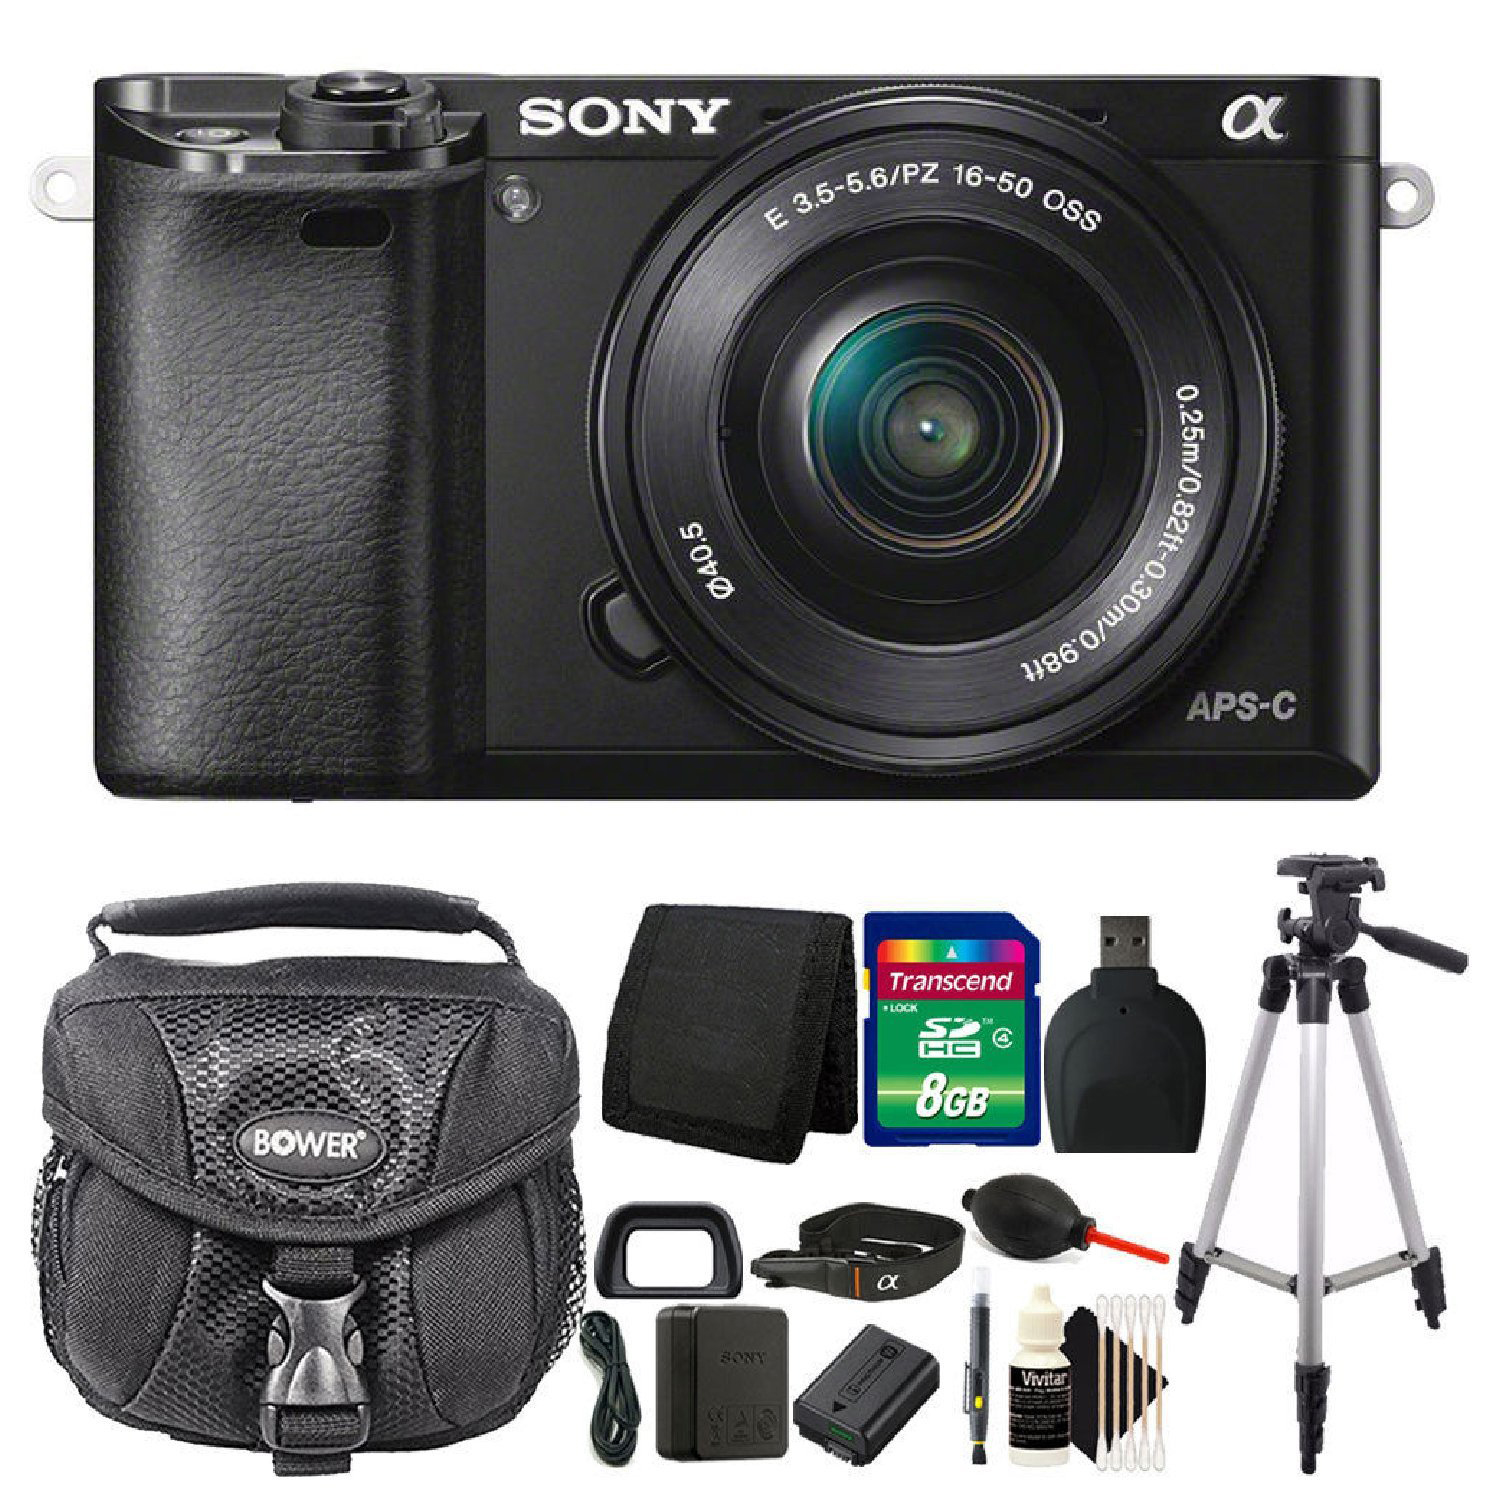 Sony Alpha A6000 24.3MP Mirrorless Digital Camera Full HD 1080p Wifi Enabled with 16-50mm + All You Need Accessory Bundle